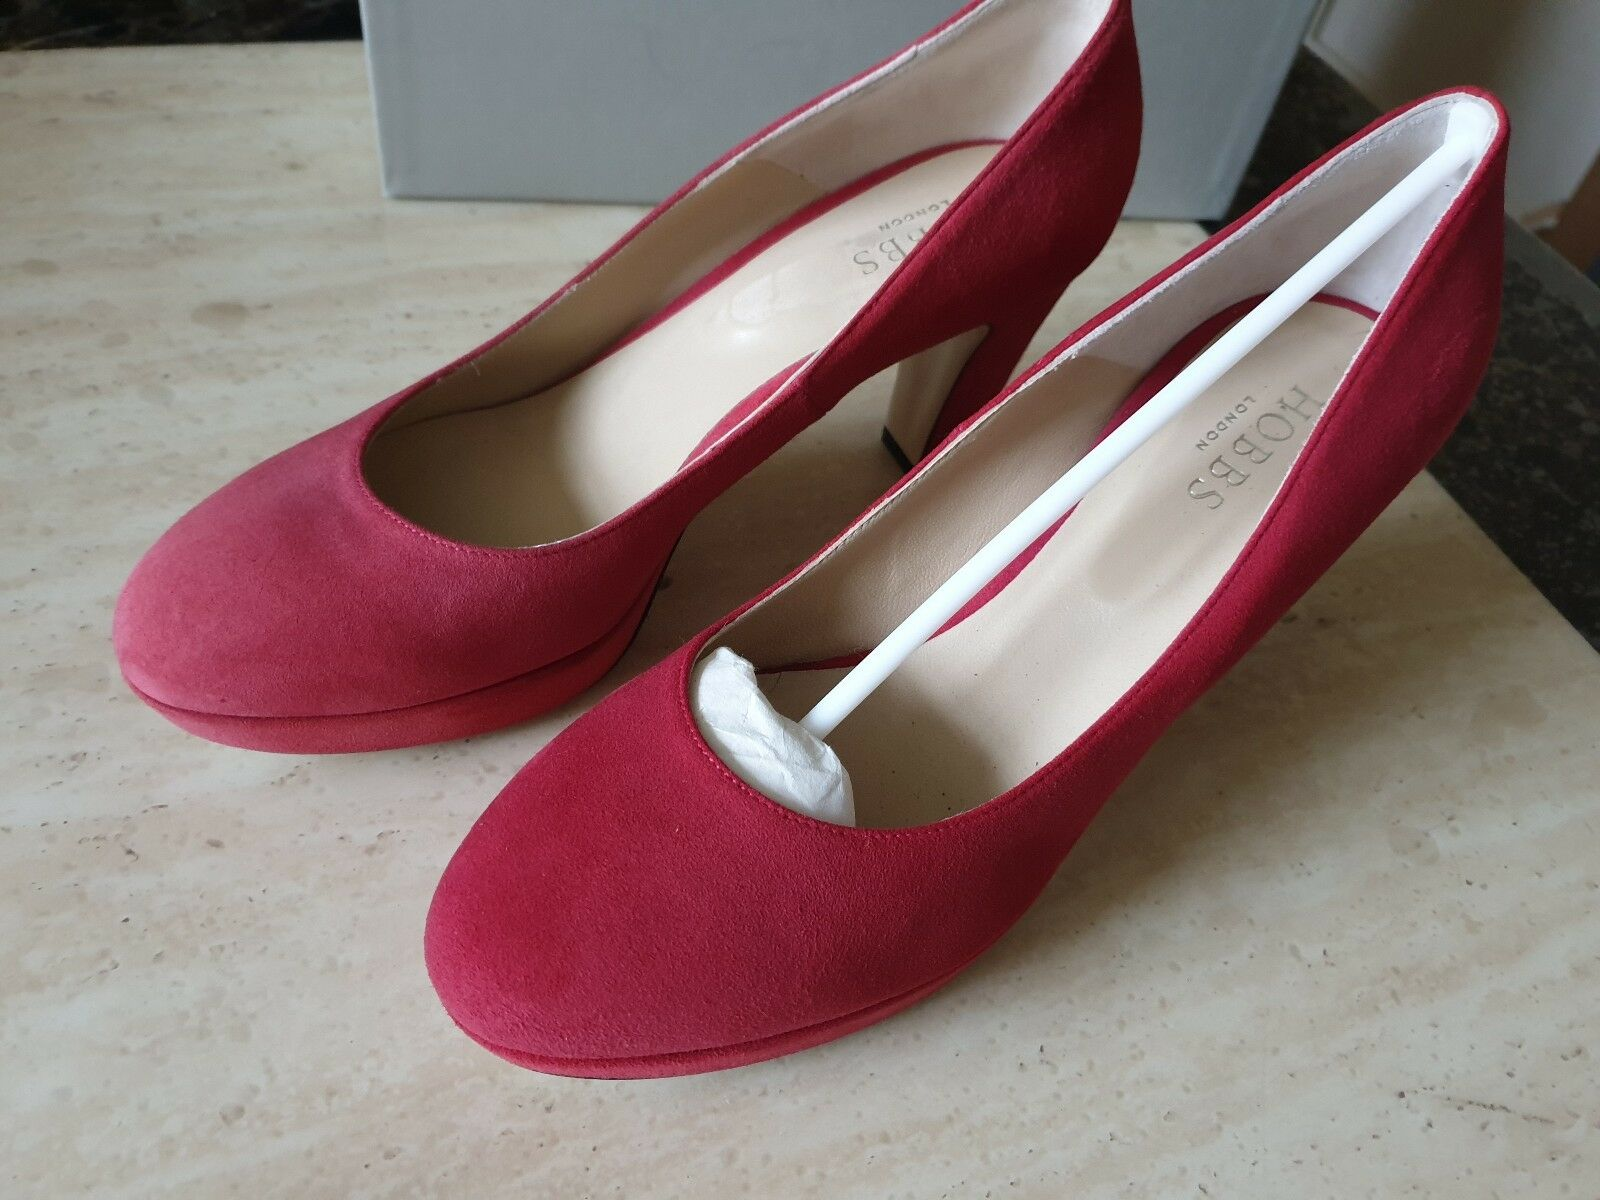 Hobbs Nicola Cour Chaussures Talons Rose Pétale Rouge Taille UK 6 EUR 39 USA 8